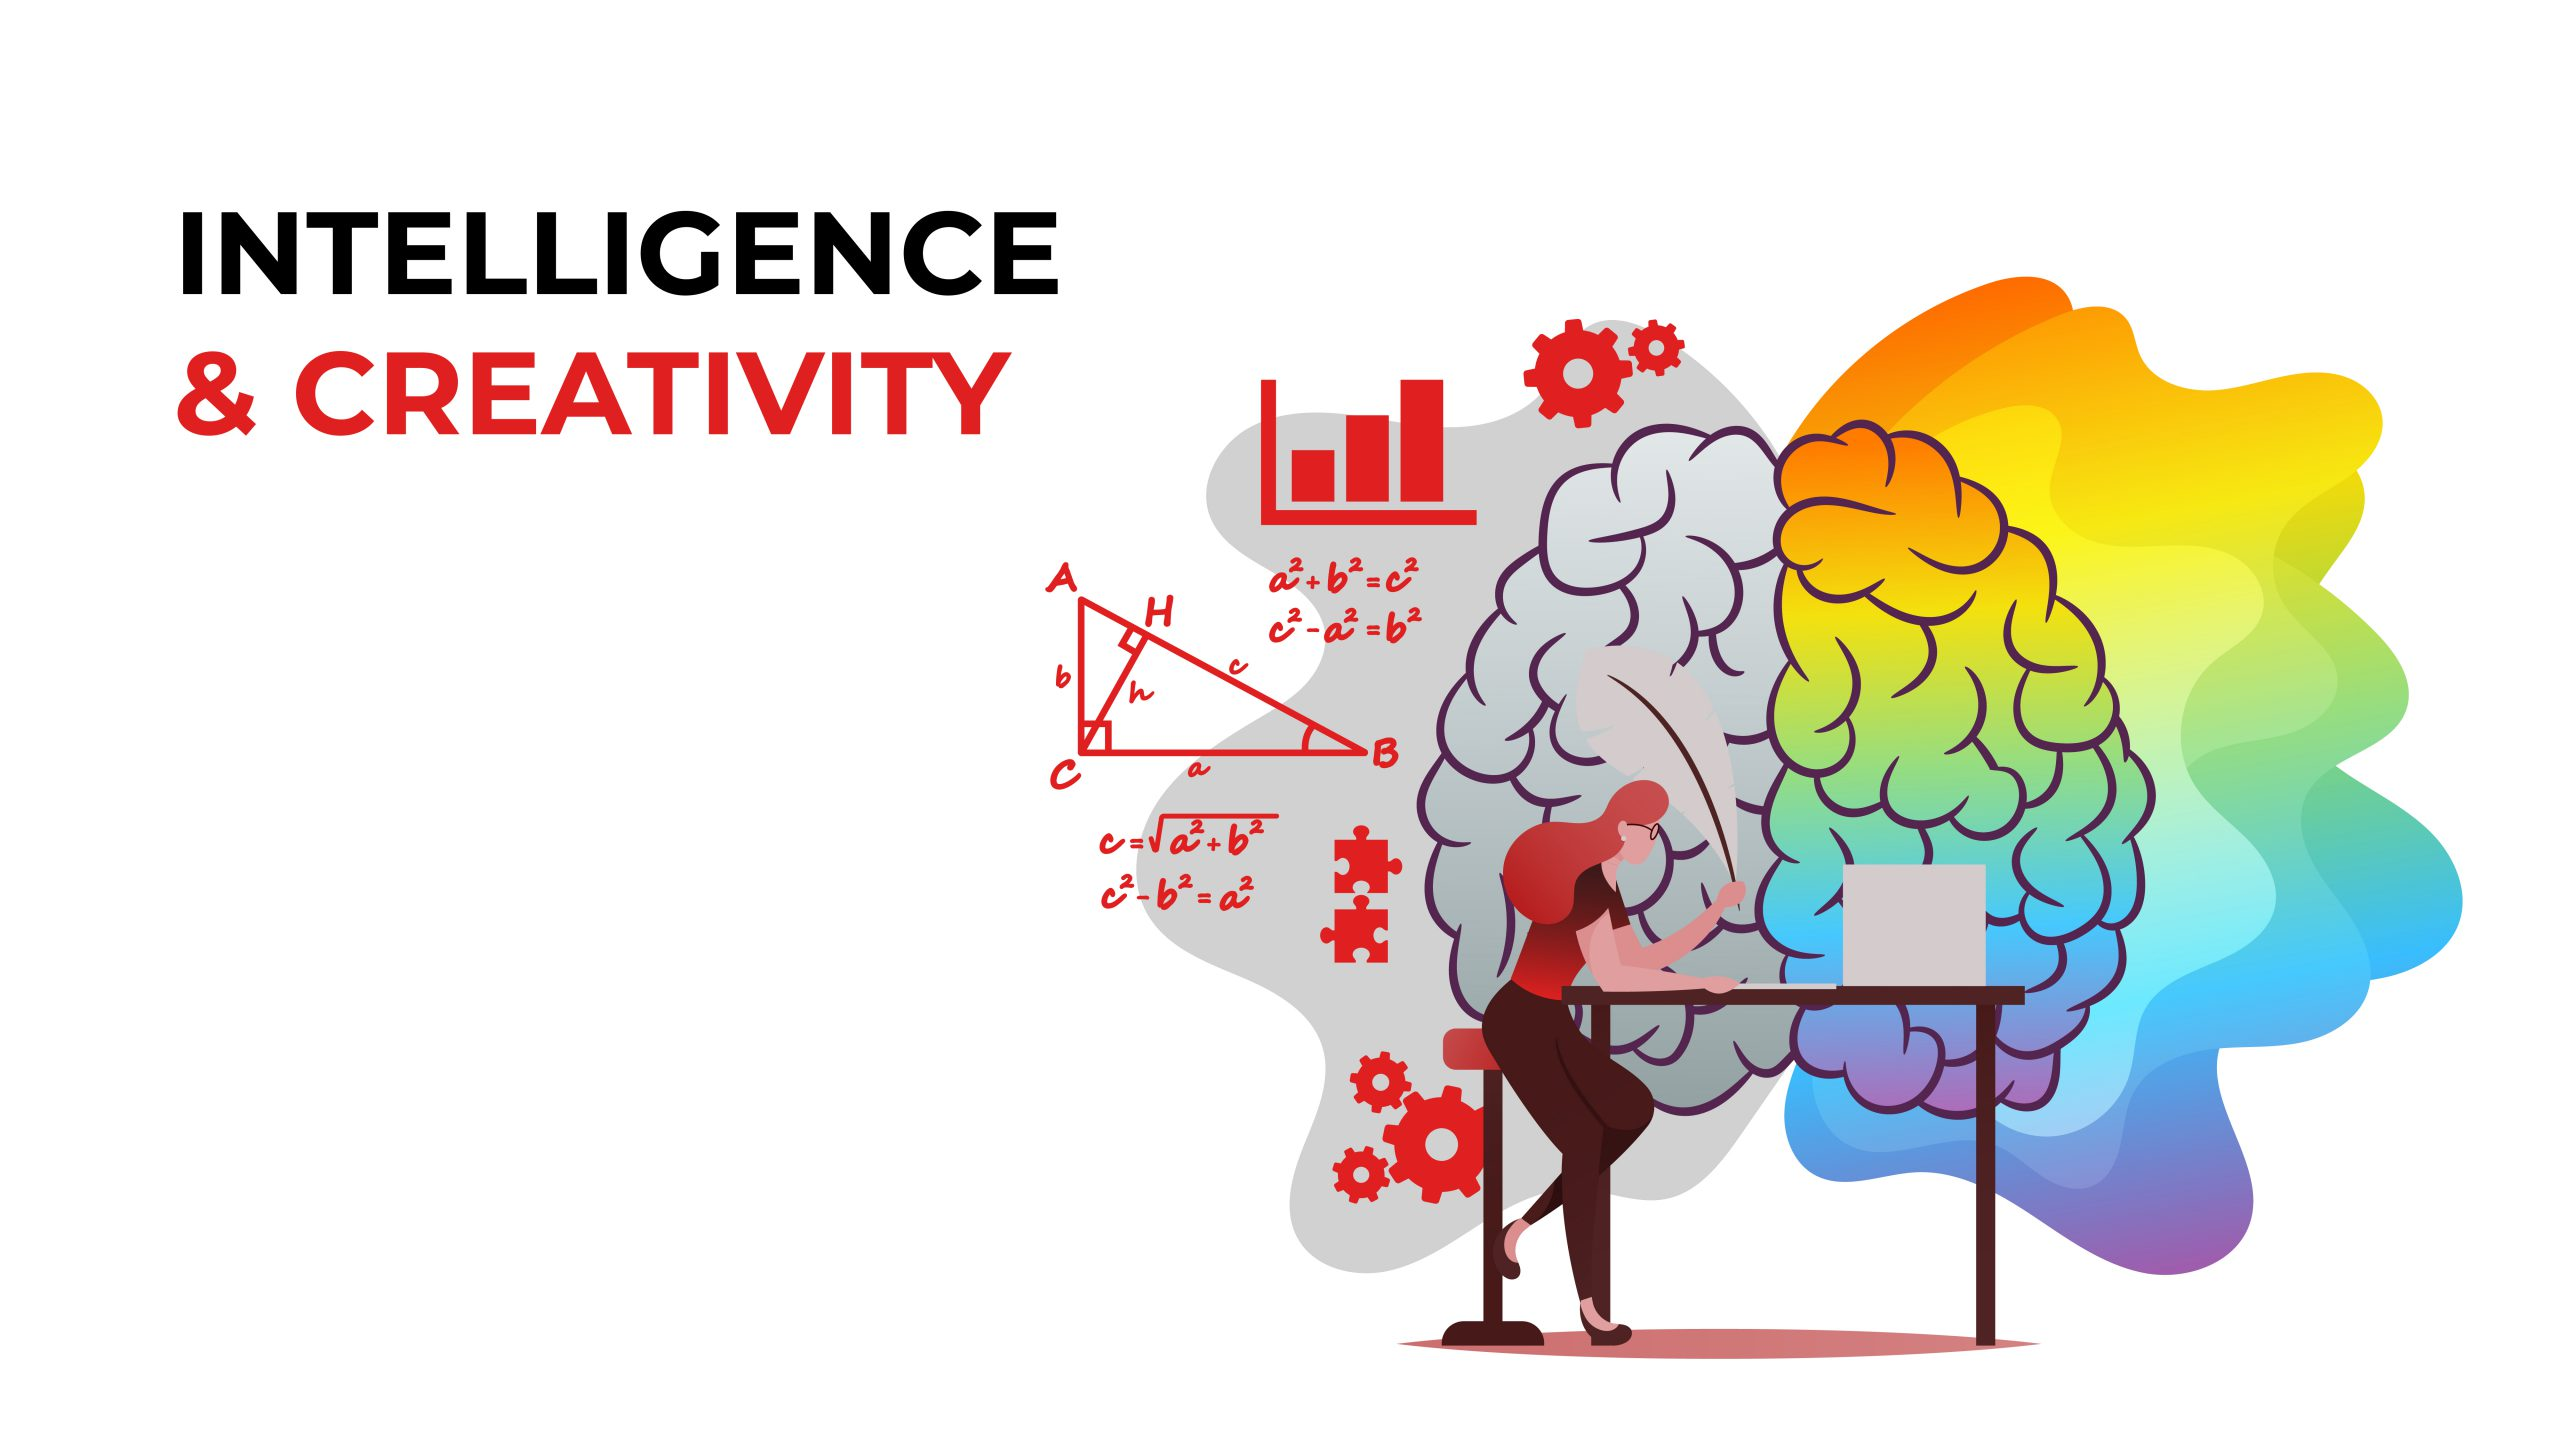 The relationship between creativity and intelligence